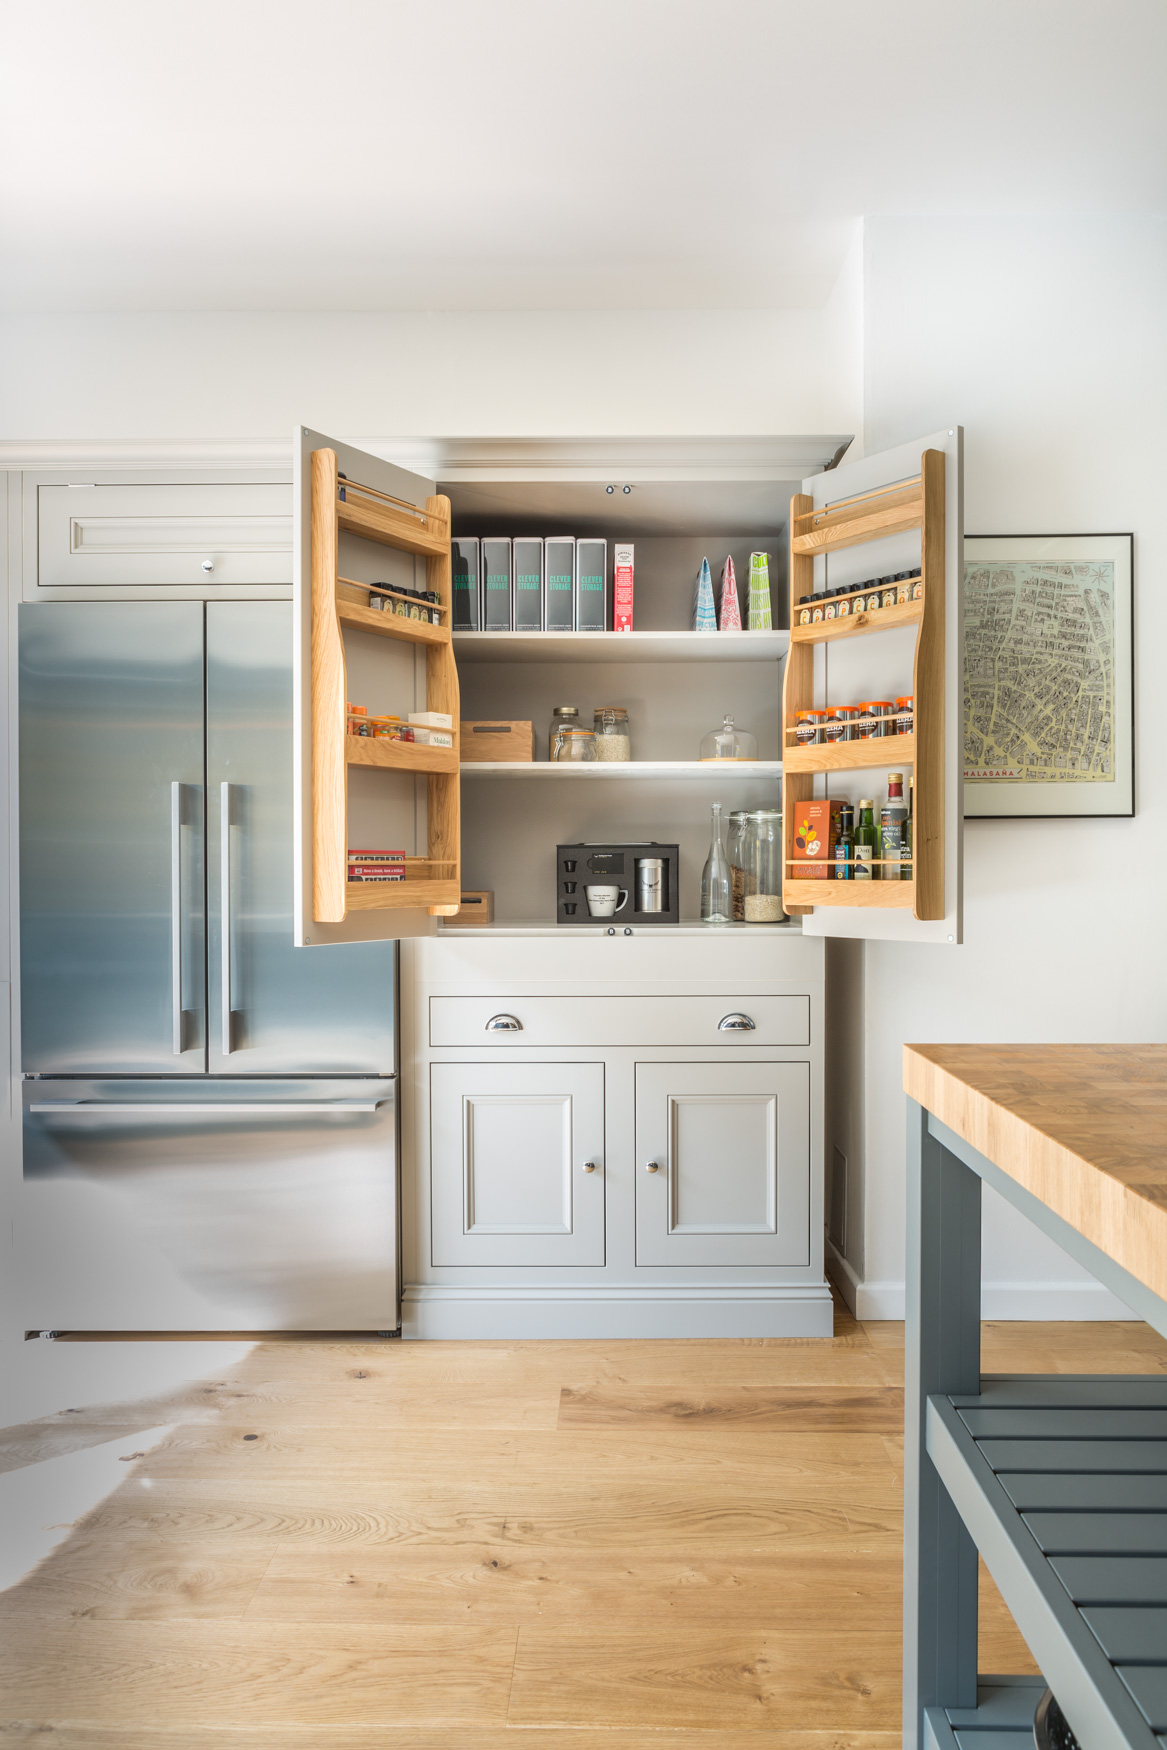 Creating space with Natural Light